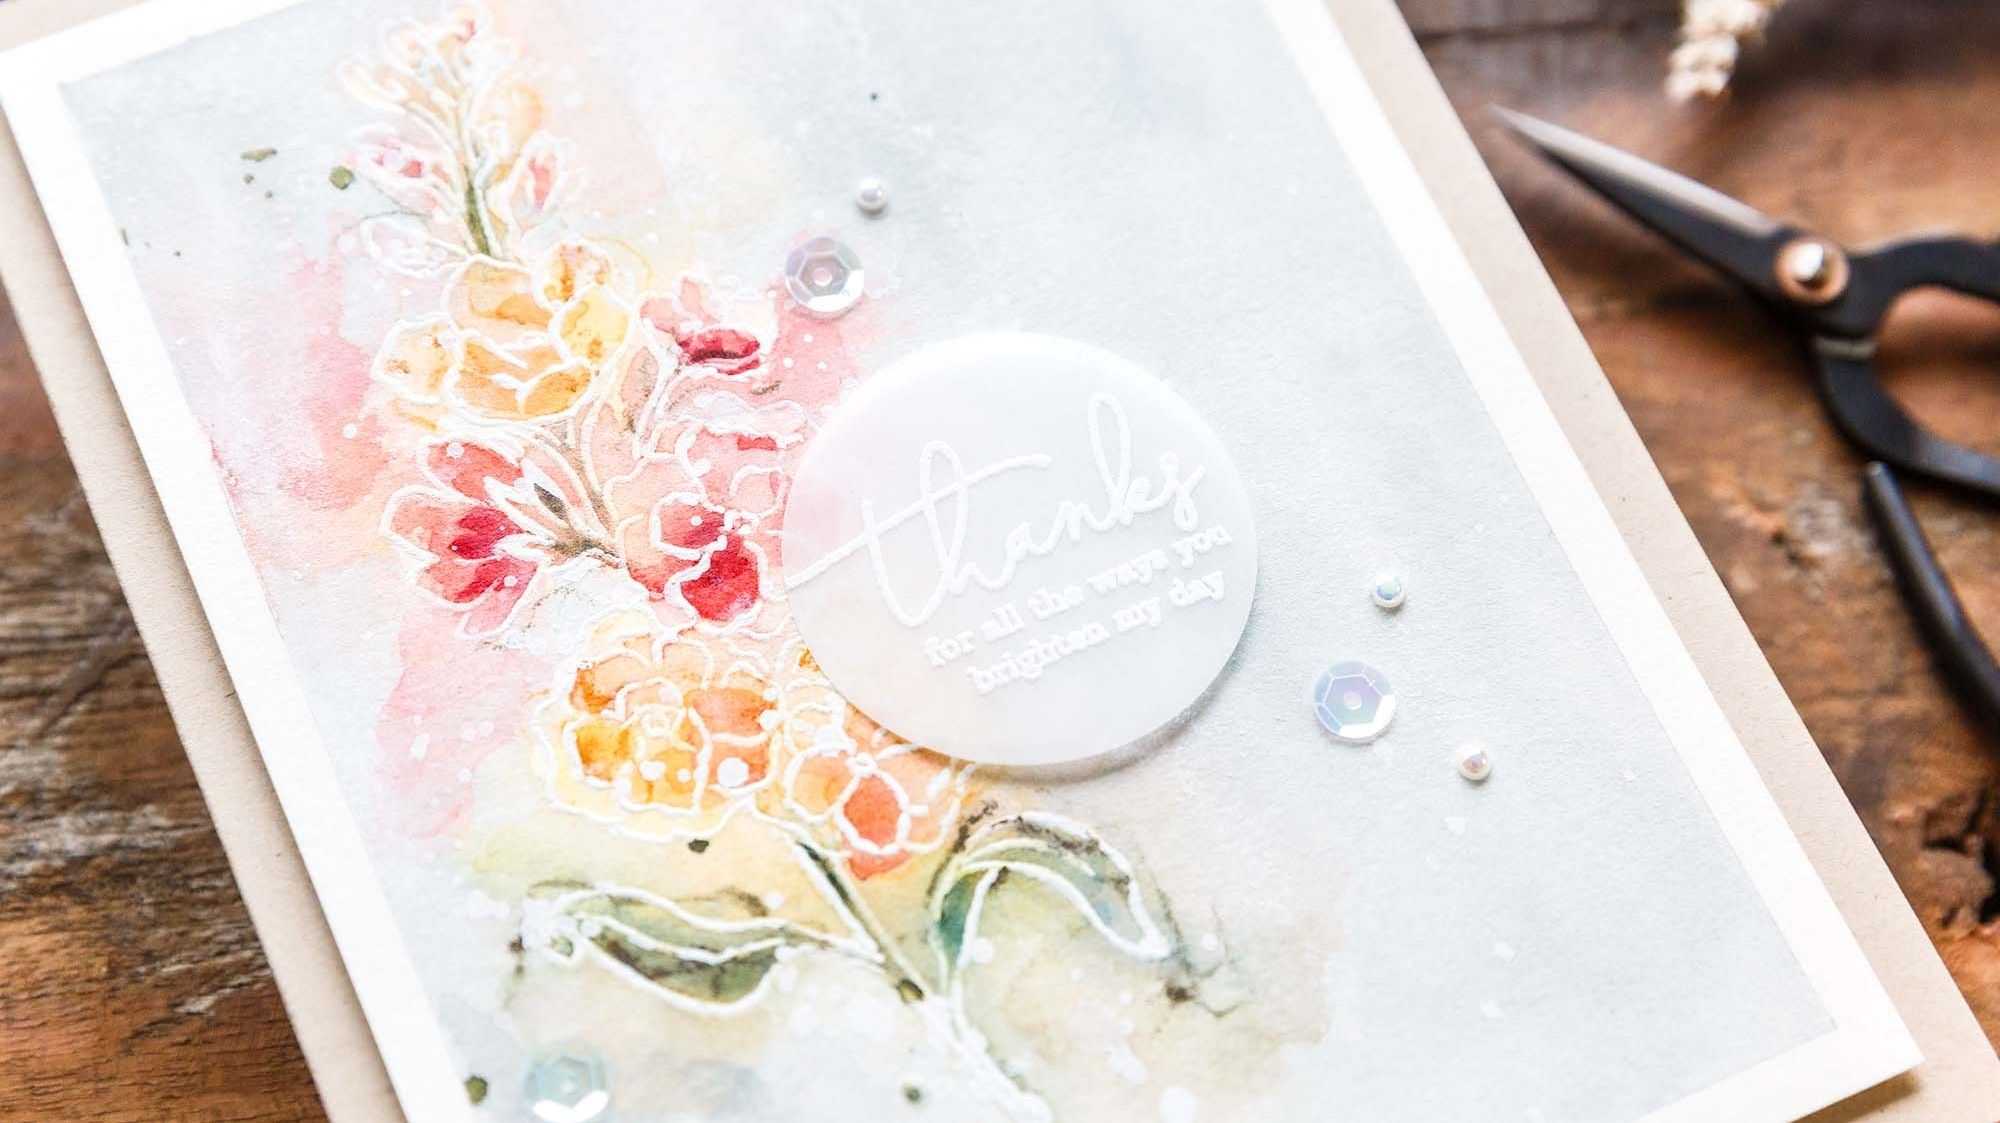 LIght & airy with PinkFresh STAMPtember stamp set. Handmade card design by Debby Hughes.